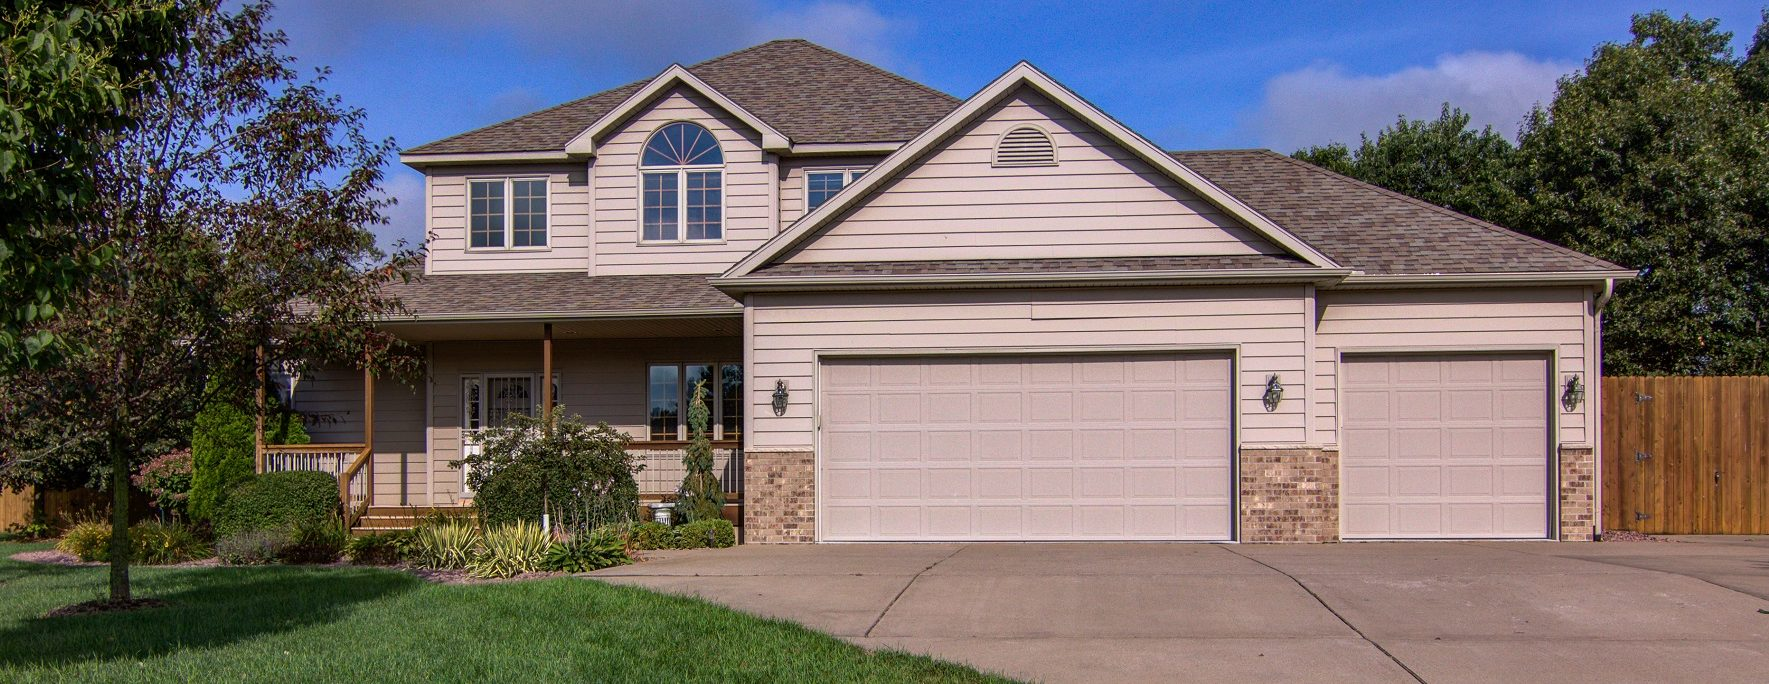 blog team tiry chippewa valley s 1 real estate team check out this gorgeous house at n1755 945th street in eau claire with 5 bedrooms 3 5 baths and a 5 car garage for 359 900